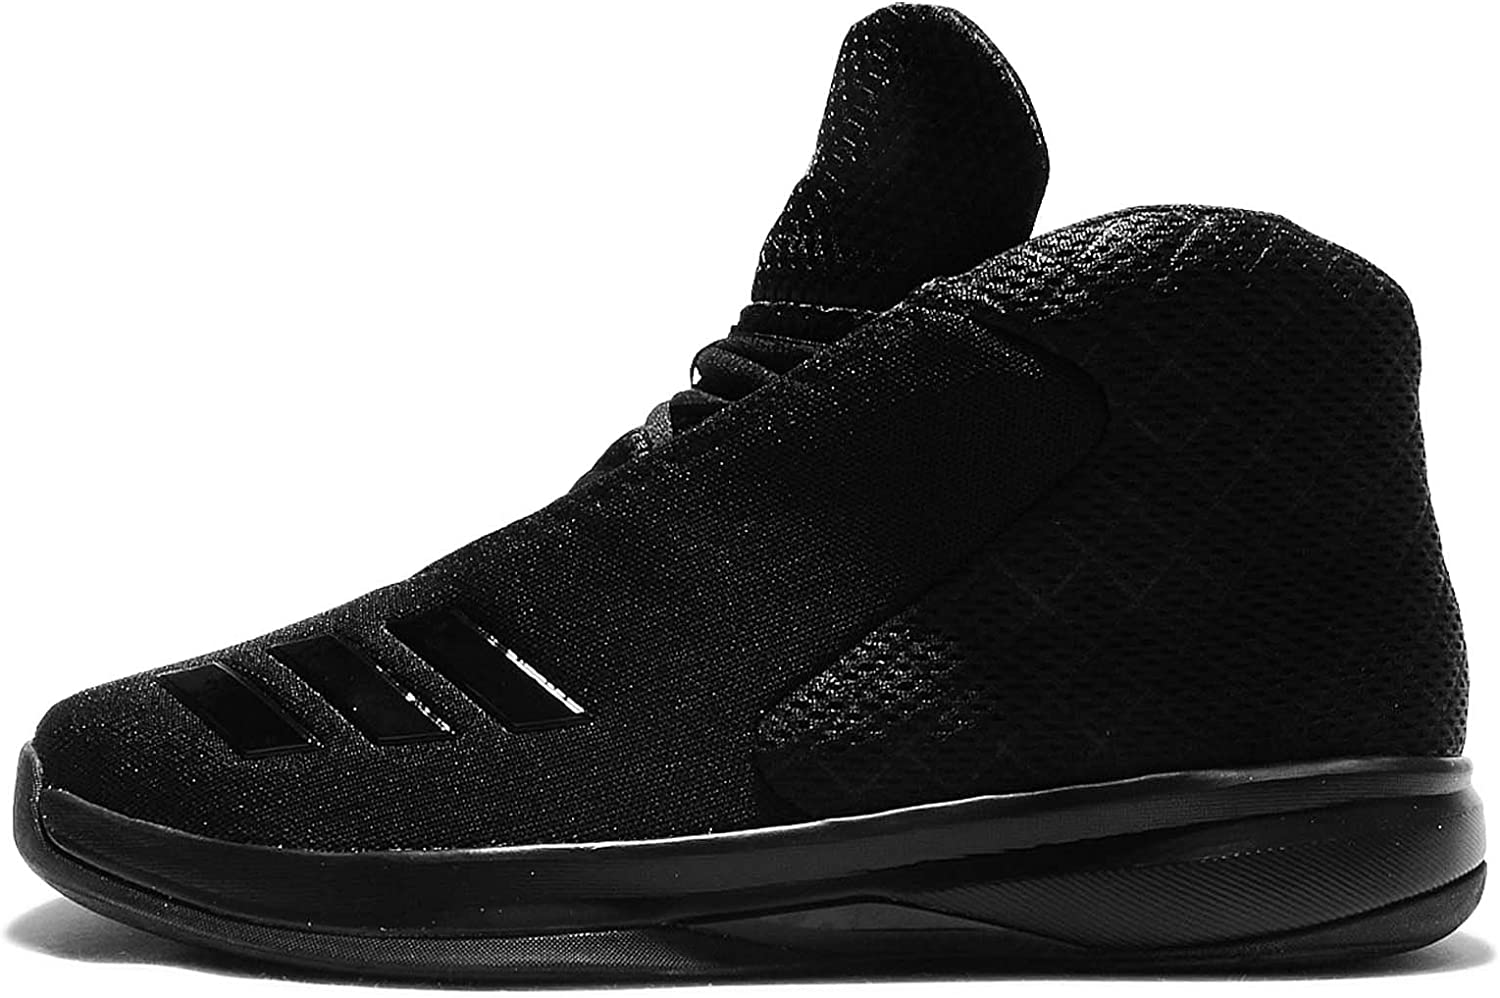 Adidas Men's's Court Fury 2016 Basketball shoes